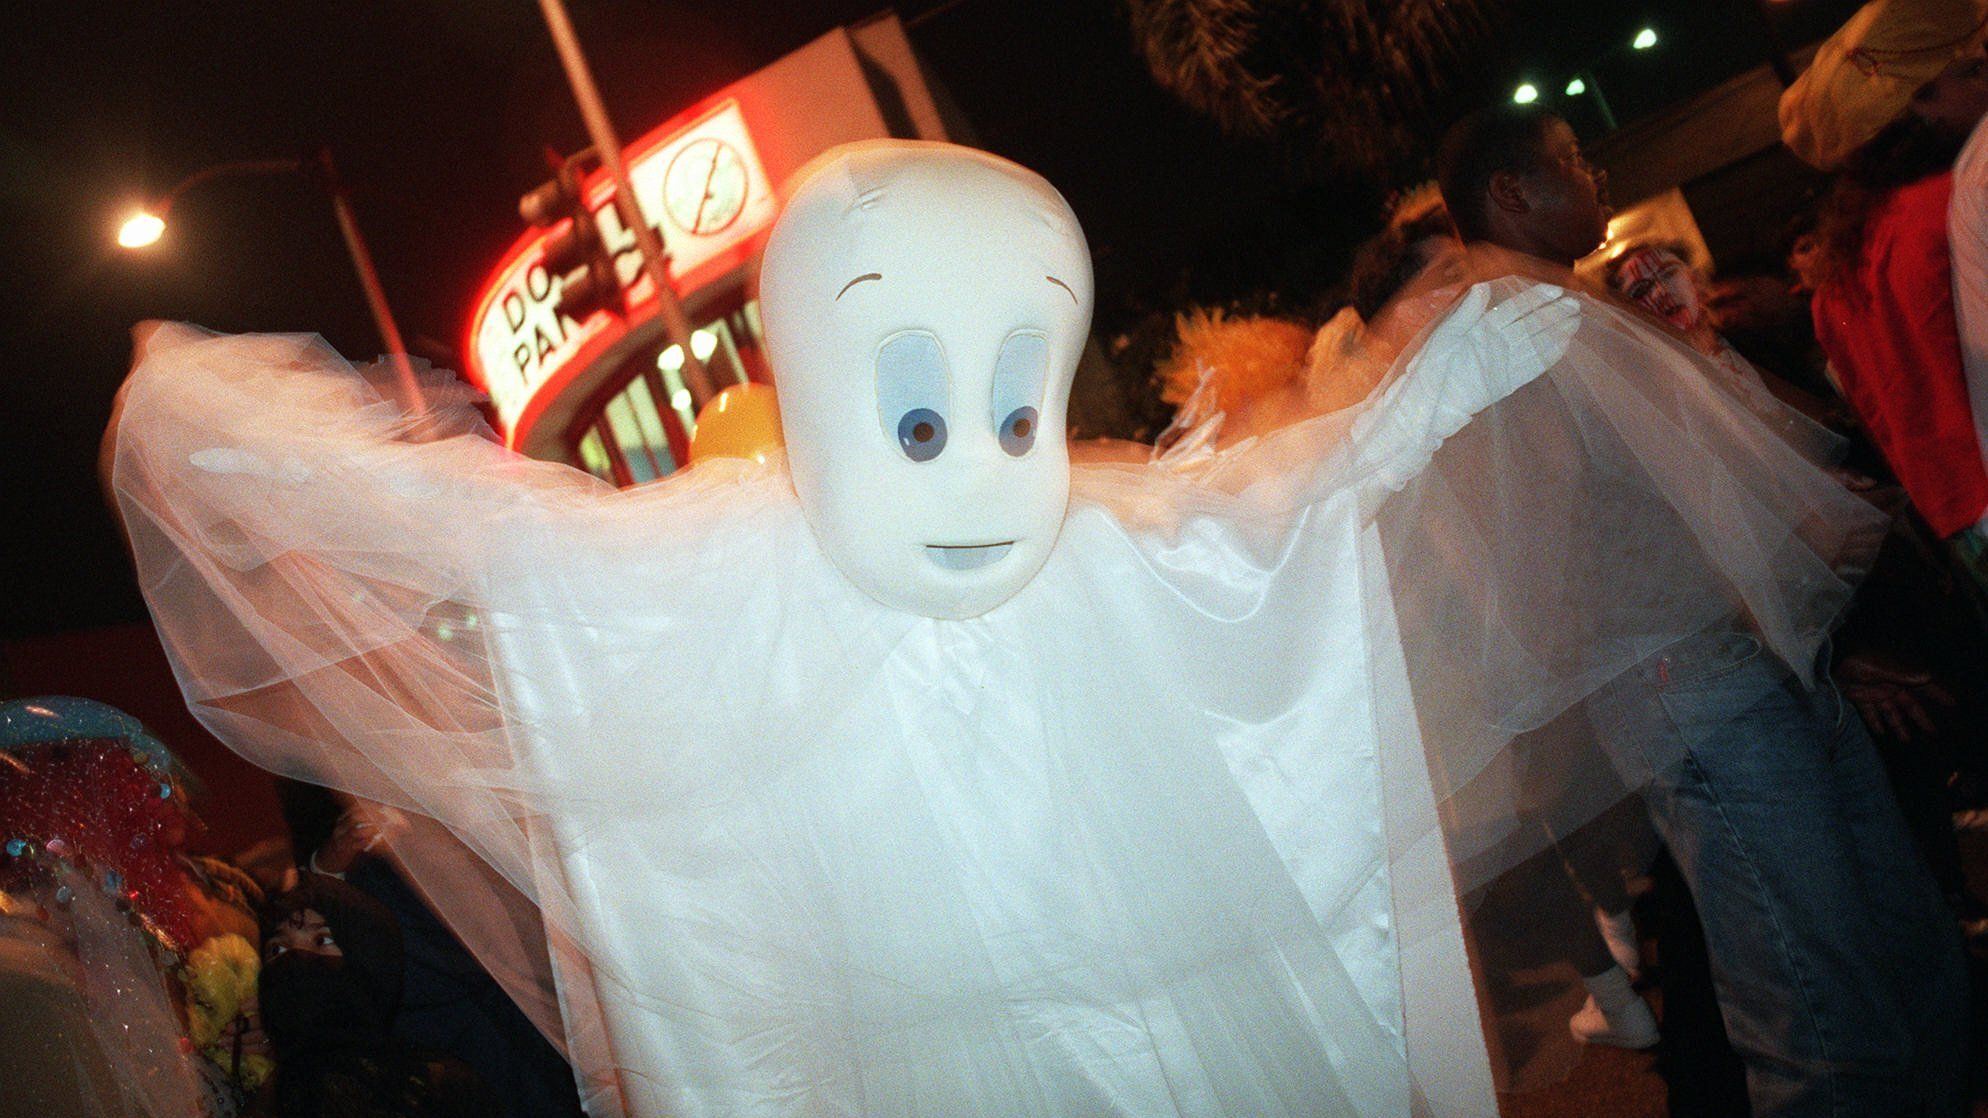 An unidentified Halloween reveler dressed as Casper the Friendly Ghost parades down Santa Monica Boulevard in West Hollywood, Calif., Tuesday, Oct. 31, 1995, during the city's annual Halloween parade The street was closed as thousands of party goers and onlookers walked in and out of costume. (AP Photo/Rene Macura)